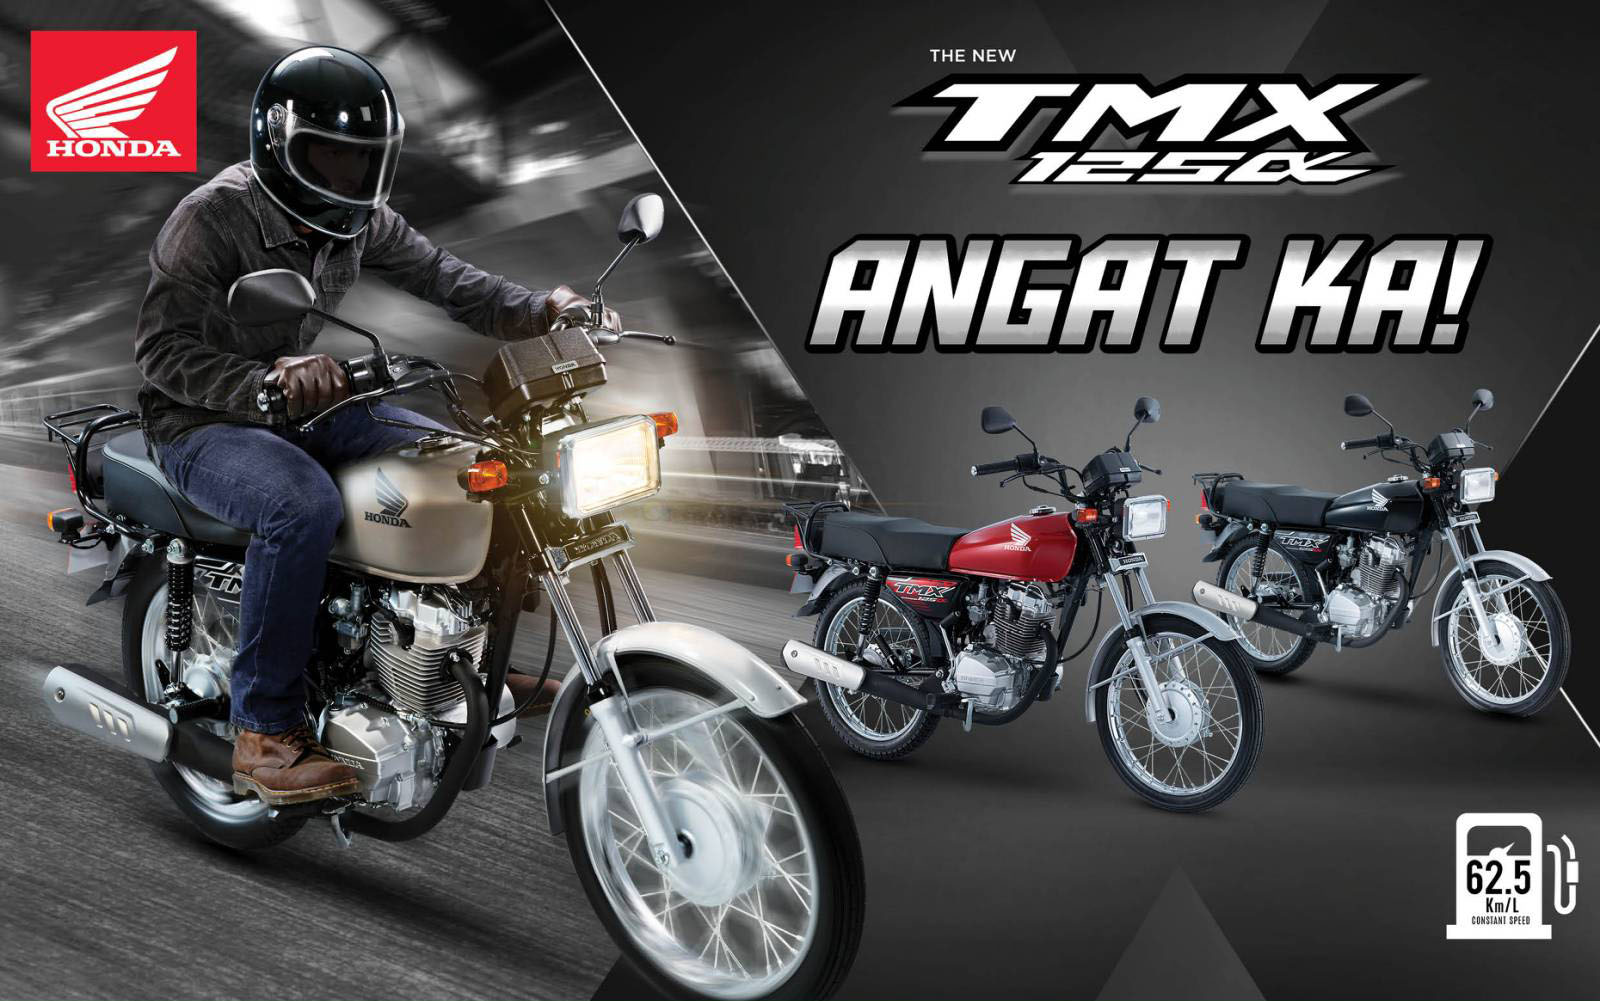 Making a living, riding solo with the new Honda TMX125 Alpha